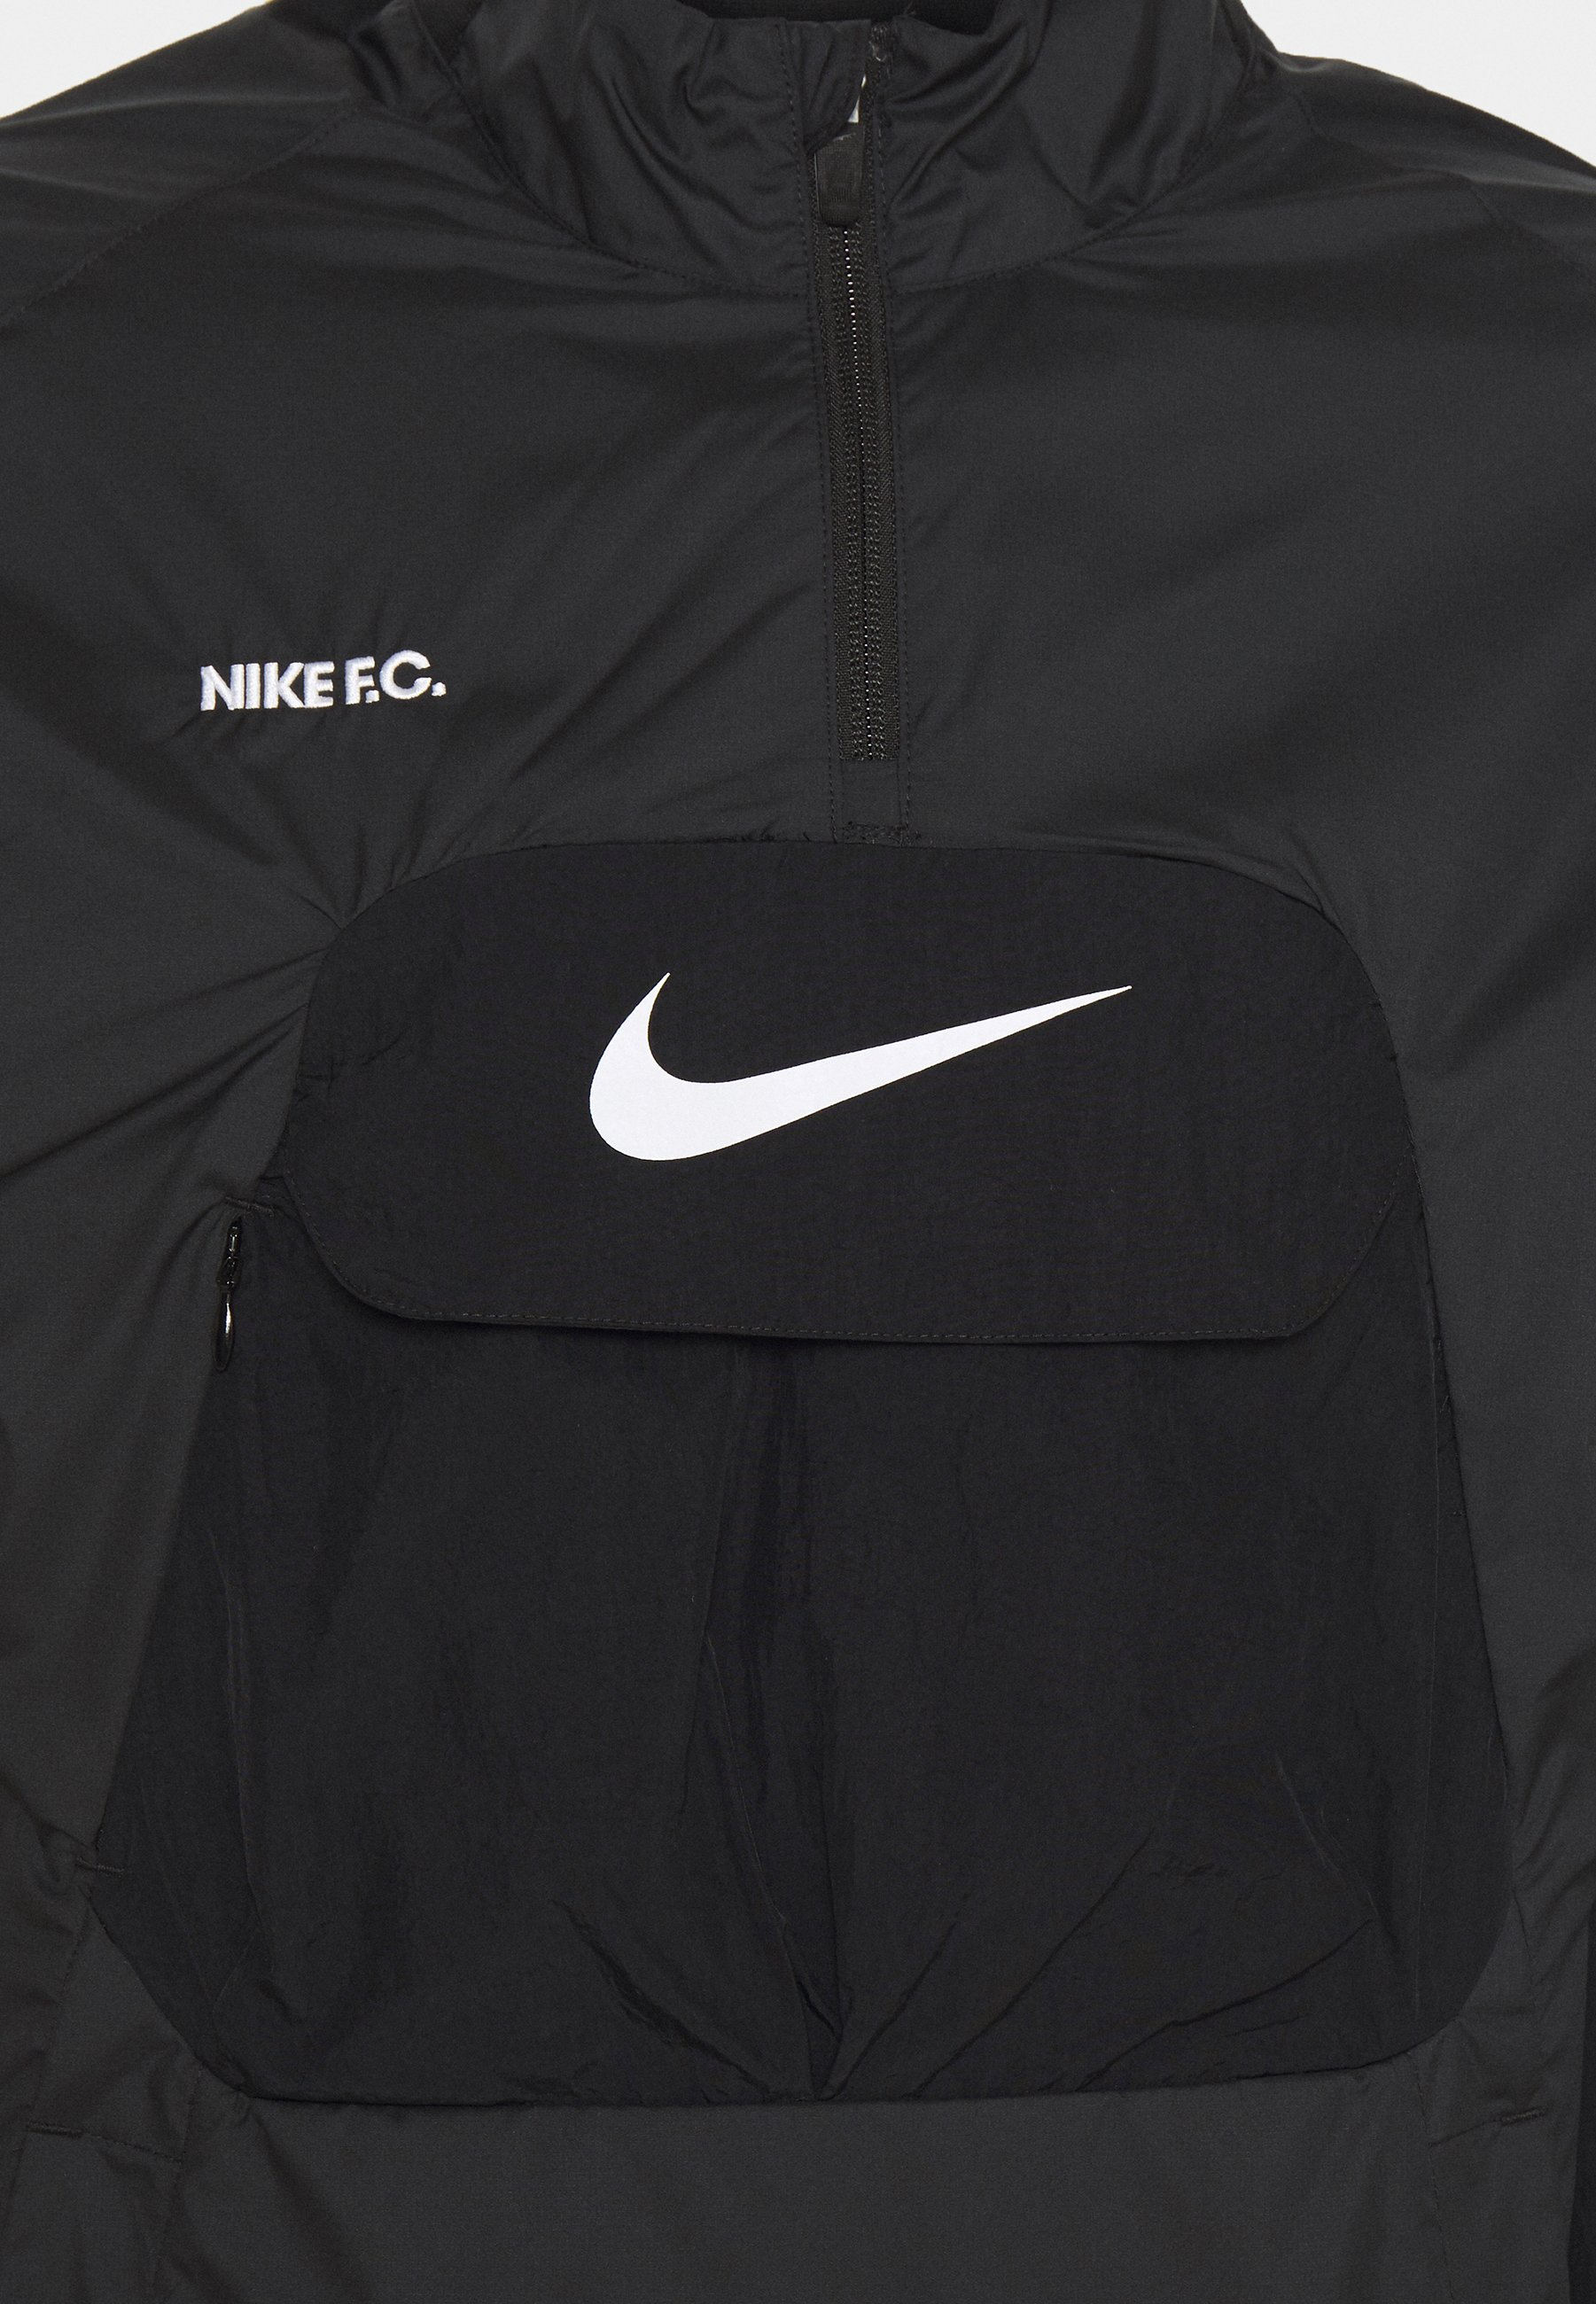 Clean And Classic Fast Delivery Men's Clothing Nike Performance FC ANORAK Training jacket black/white i8PP7gOnT W3FtNwROm